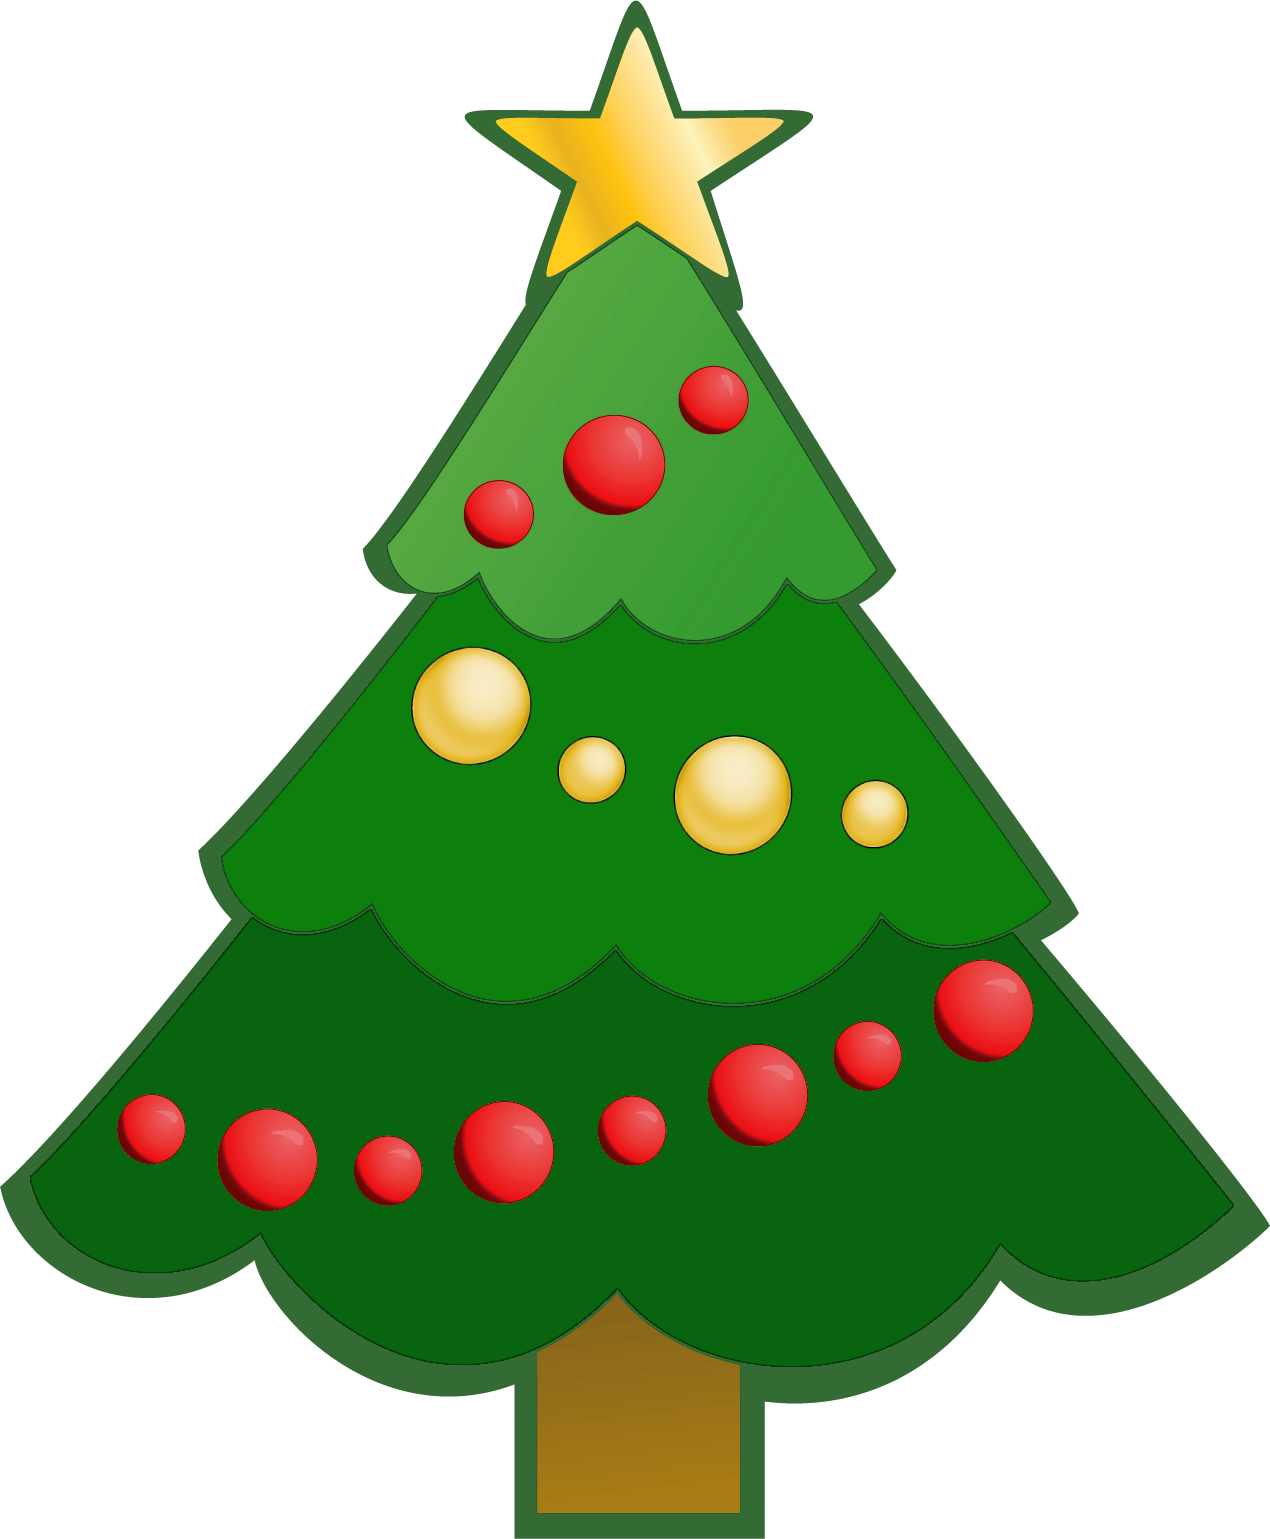 easy christmas clipart at getdrawings com free for personal use rh getdrawings com clipart christmas tree clipart christmas in july